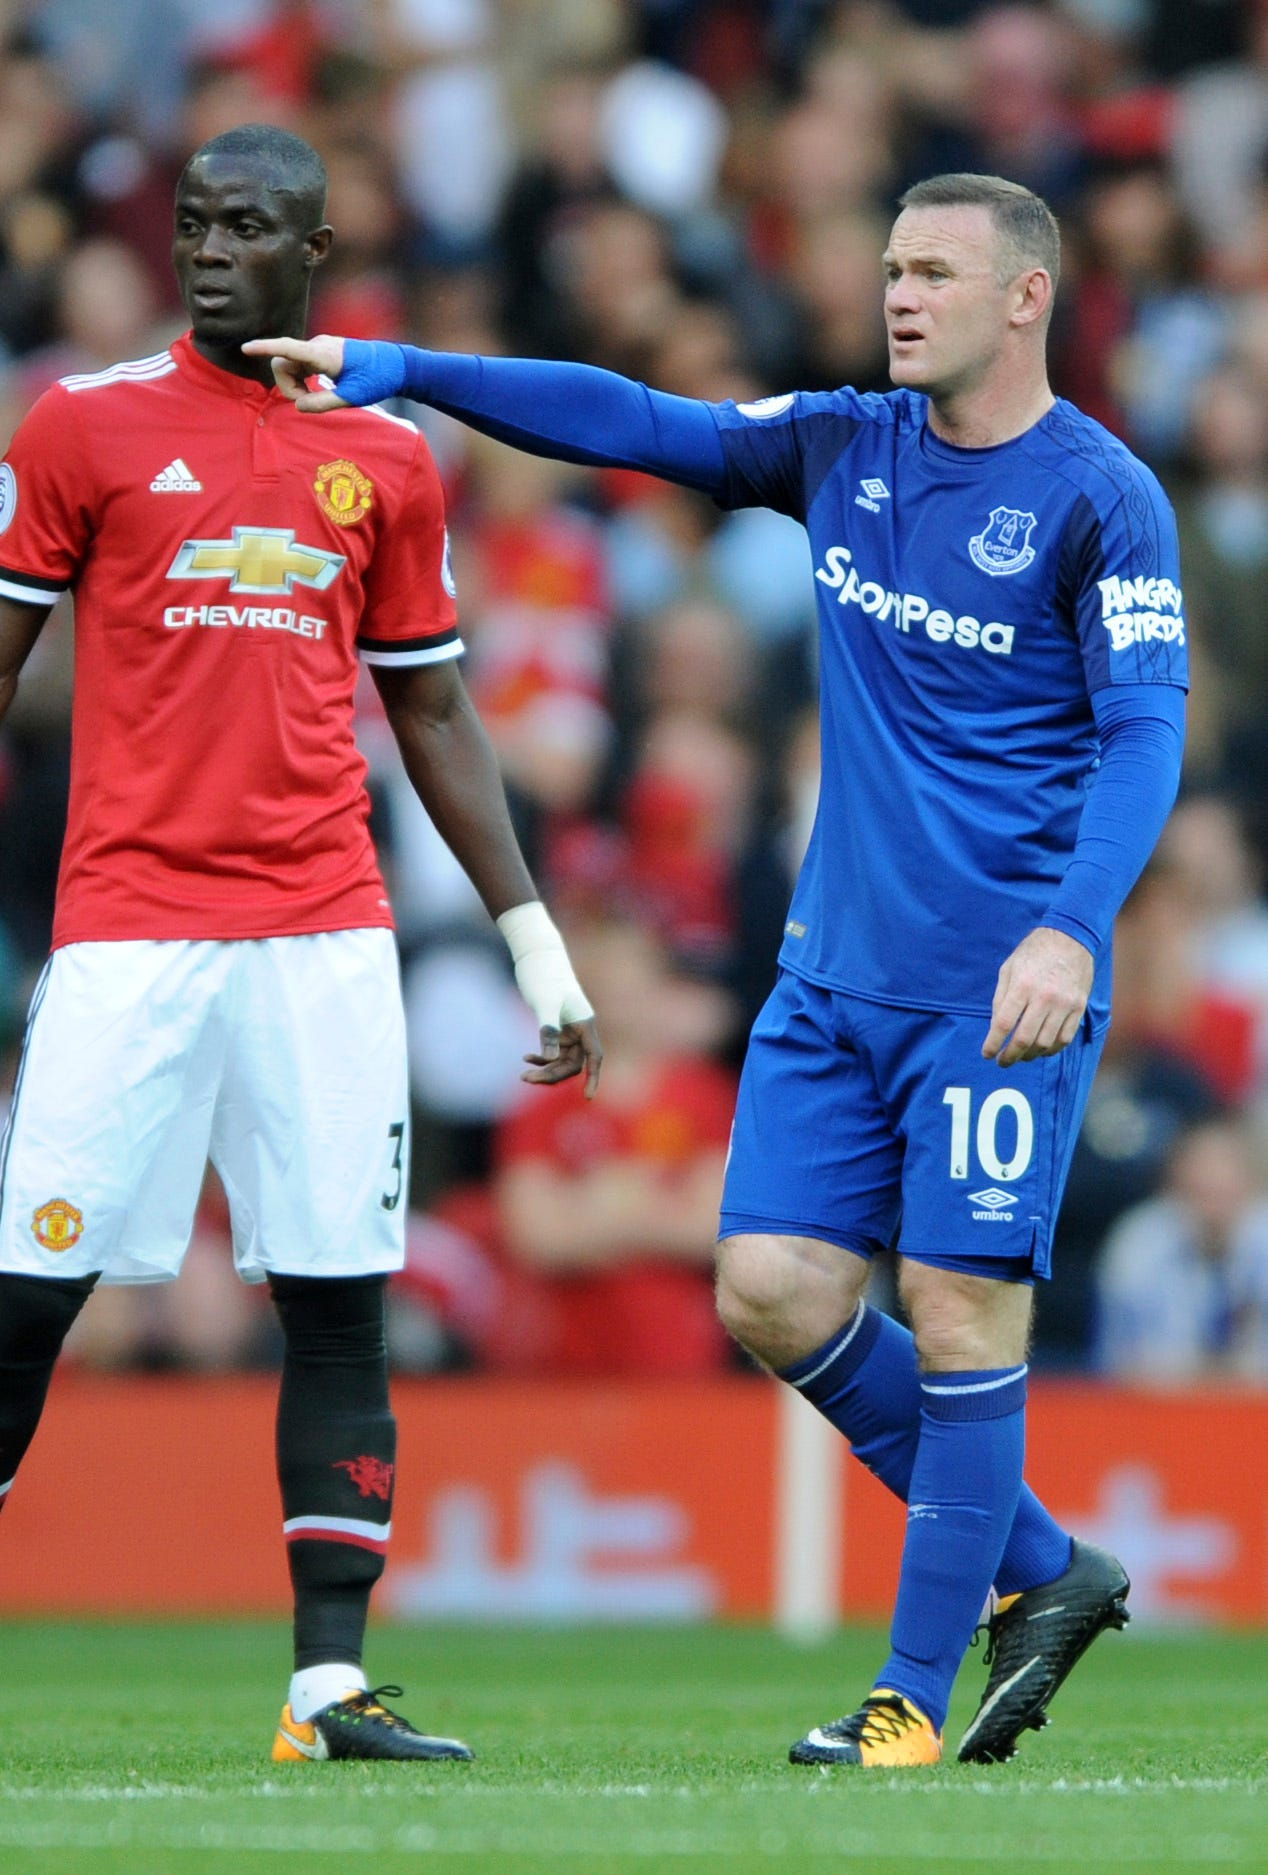 Miserable return for Rooney as Man United routs Everton 4-0